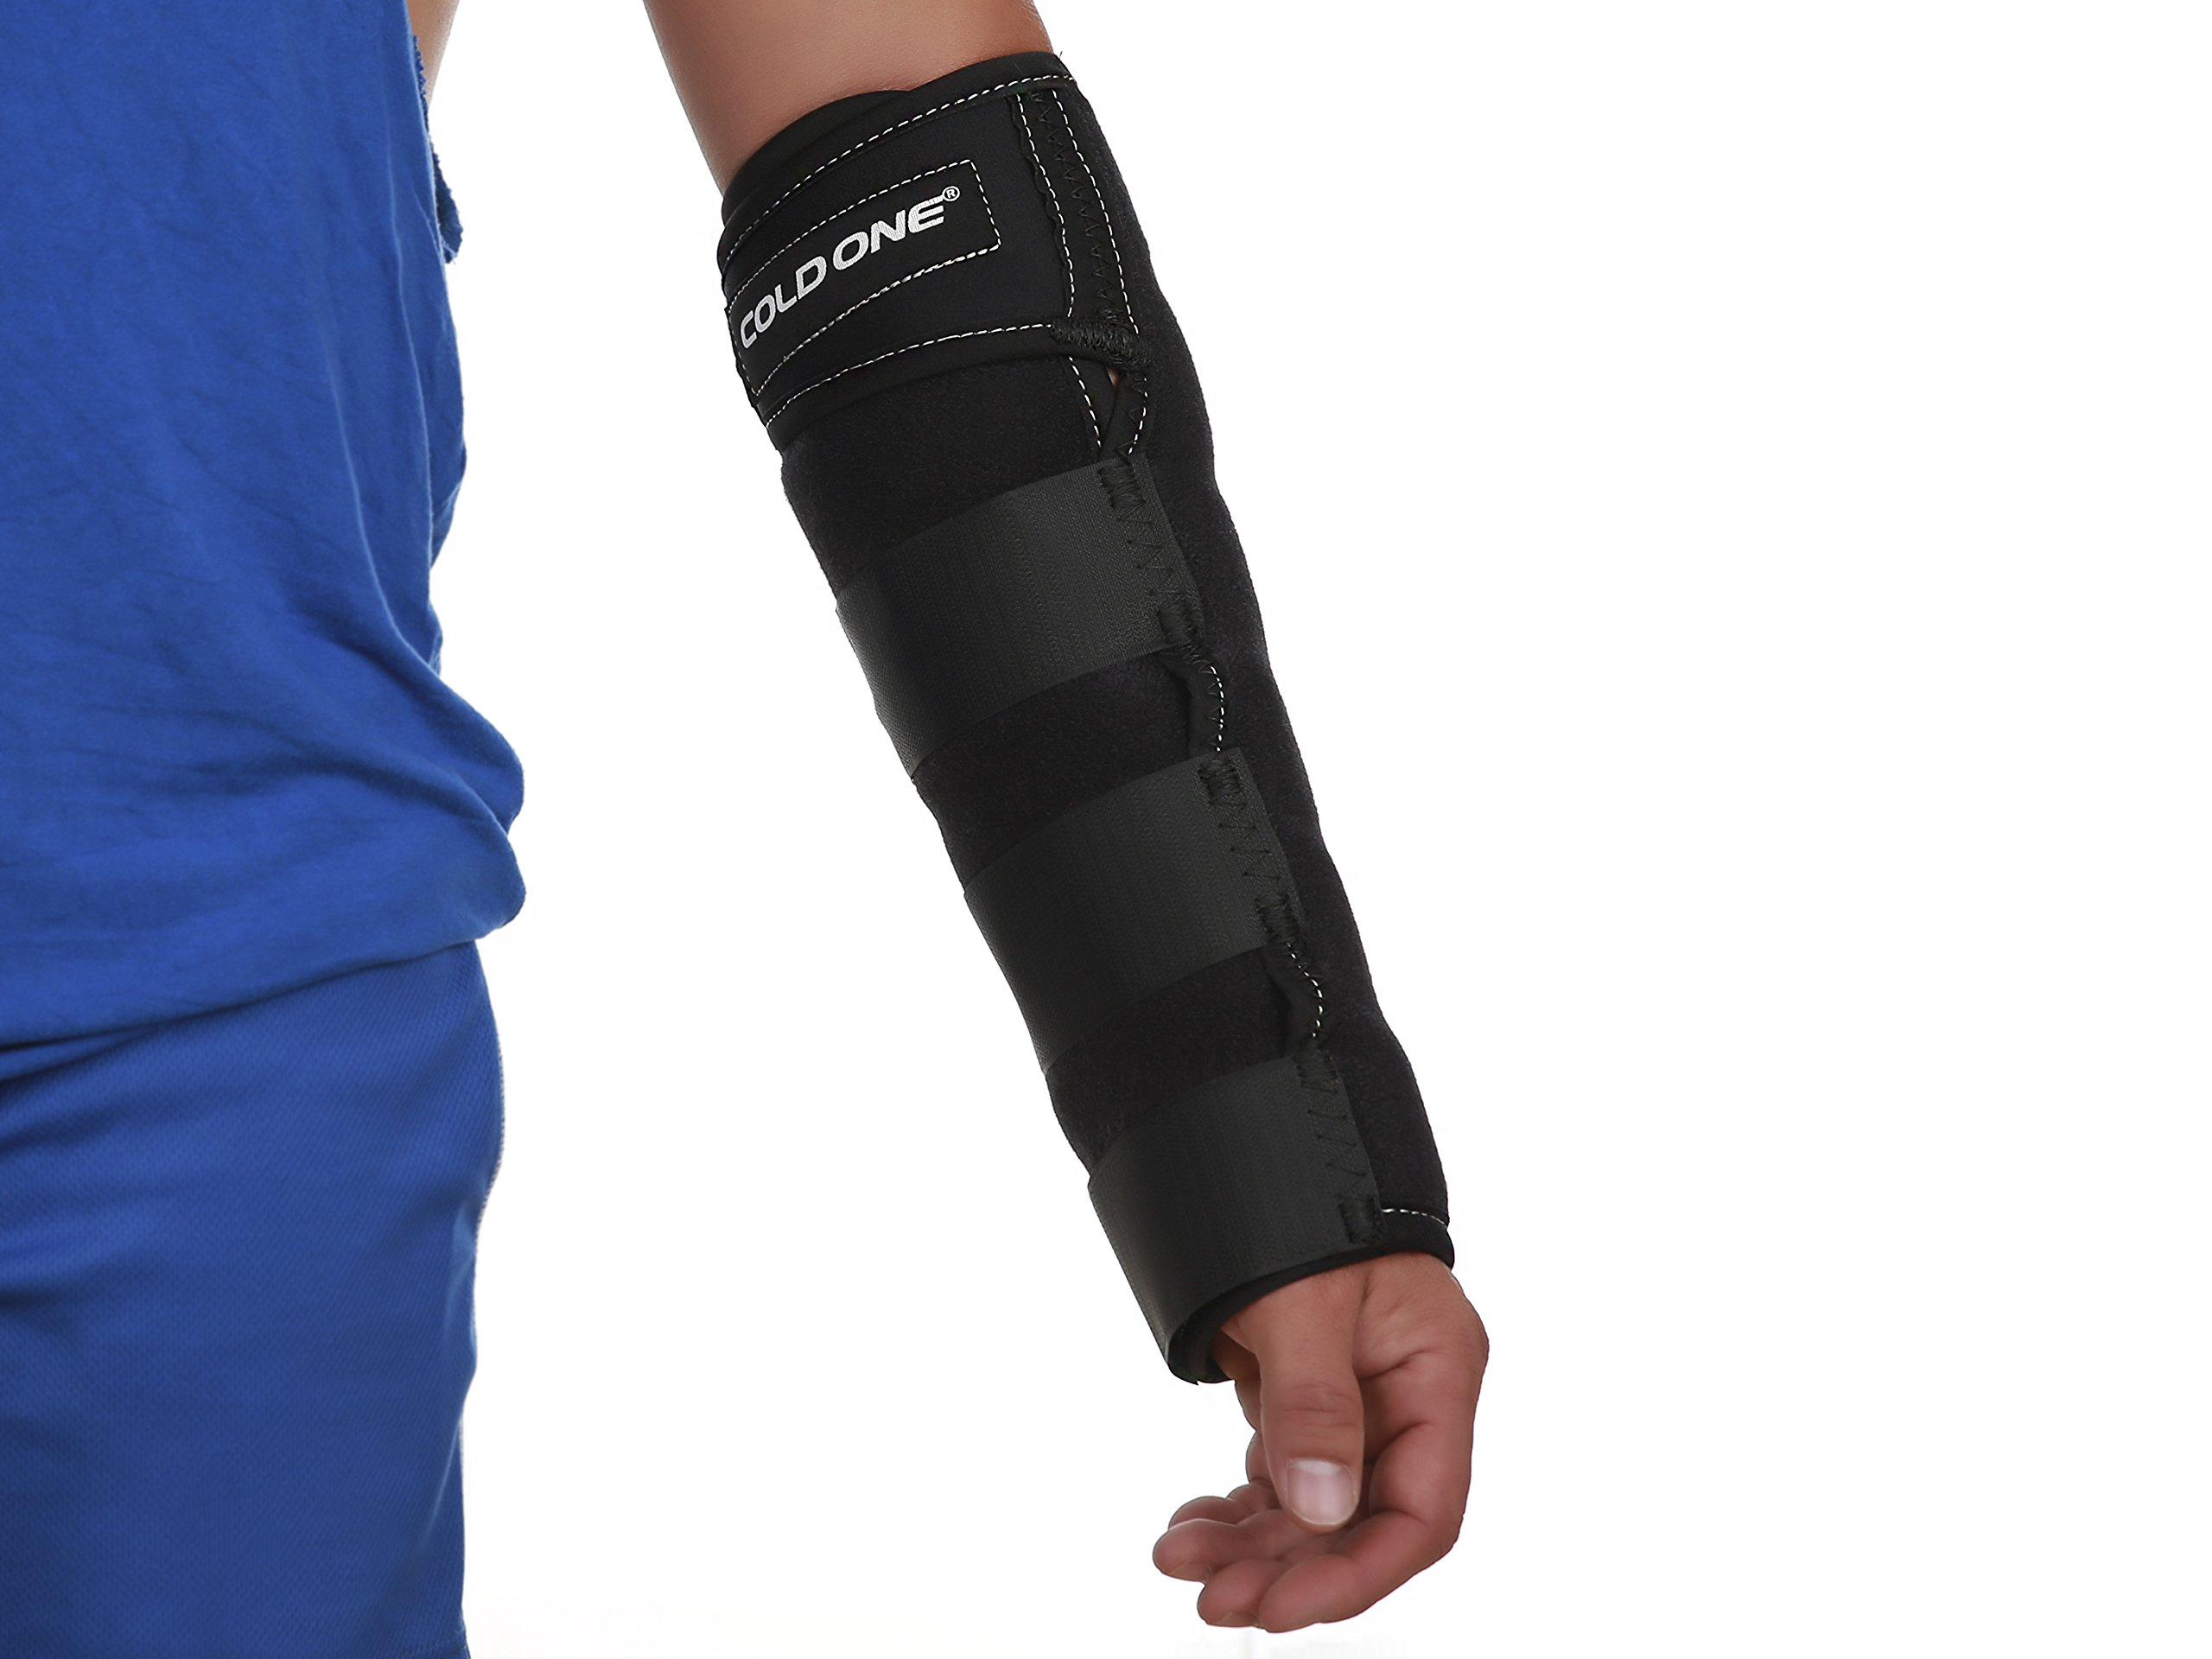 Forearm Ice Compression Wraps - Large (over 6'4'' or 260 lbs) by Cold One by Cold One